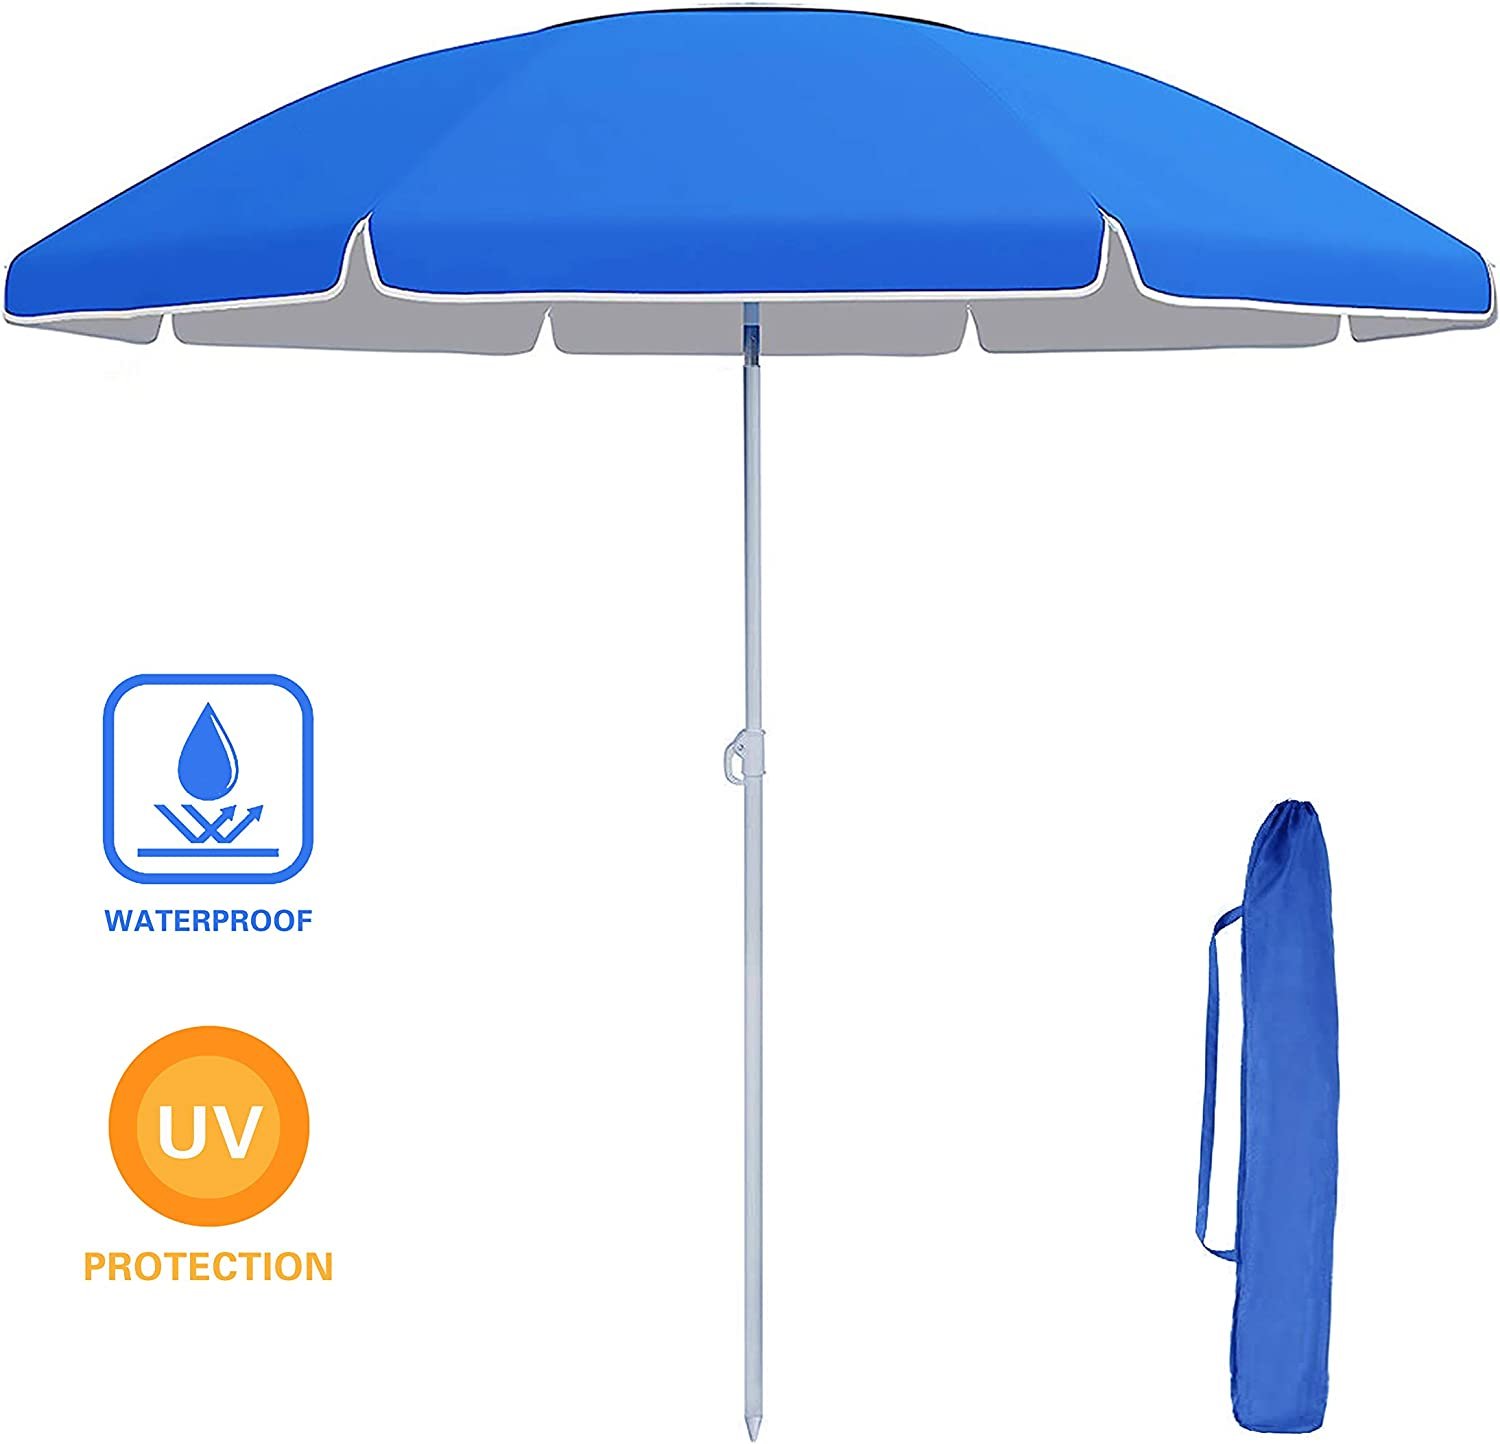 VEIKOU Fiberglass Beach Umbrella, Folded Patio Beach Umbrella, Sun Shade with Tilt Mechanism, Carry Bag – for Beach, Gardens, Balcony and Patio Blue